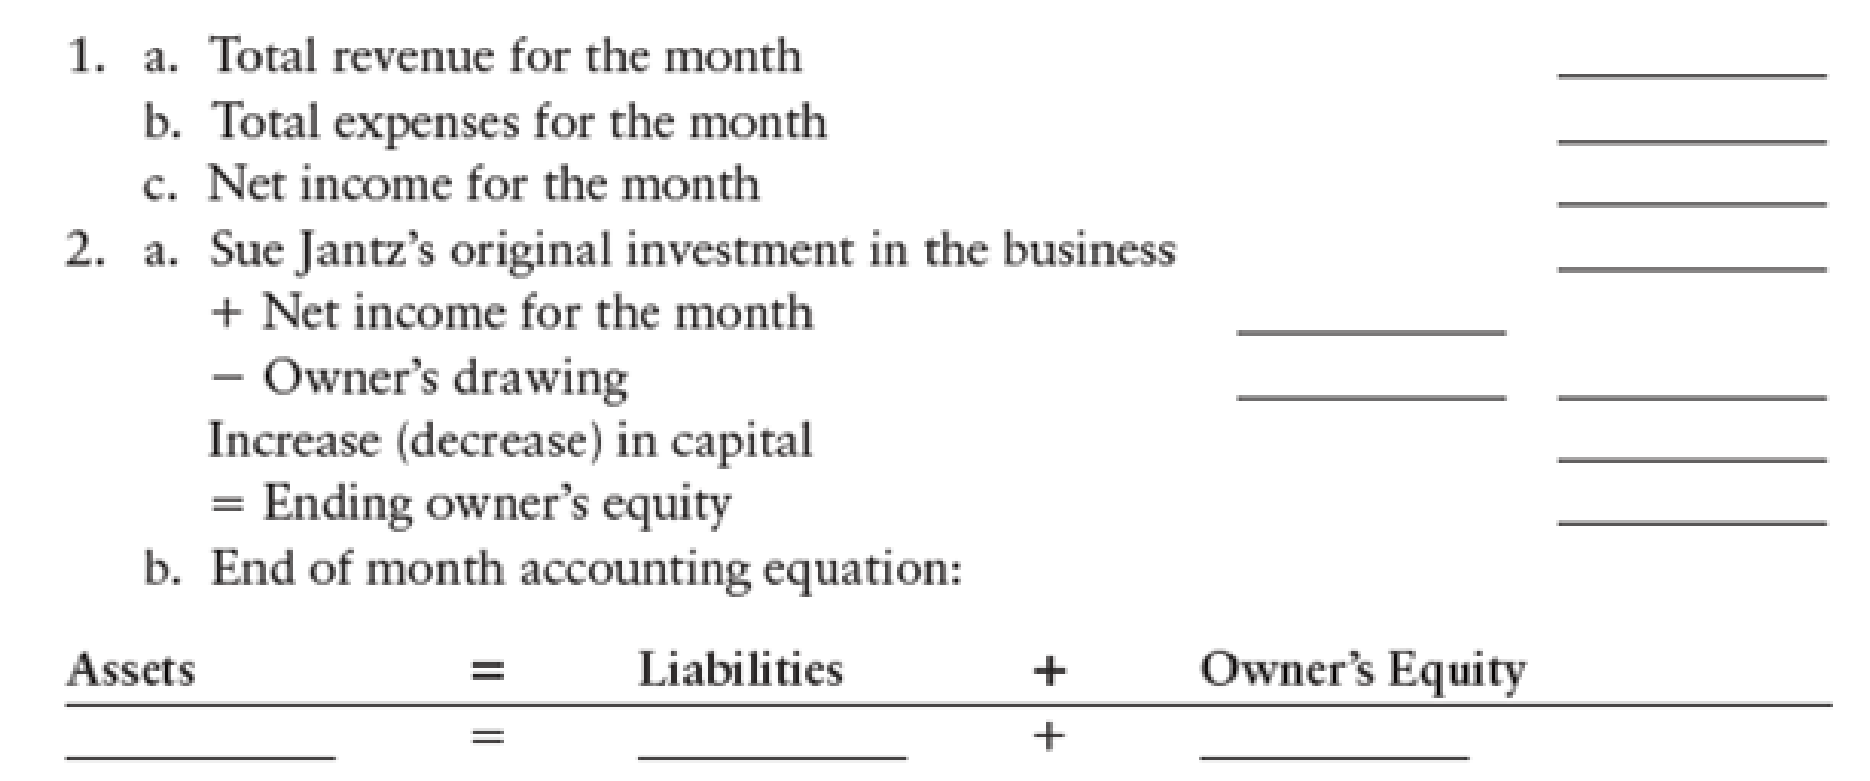 Chapter 3, Problem 14SPB, NET INCOME AND CHANGE IN OWNERS EQUITY Refer to the trial balance of Jantz Plumbing Service in